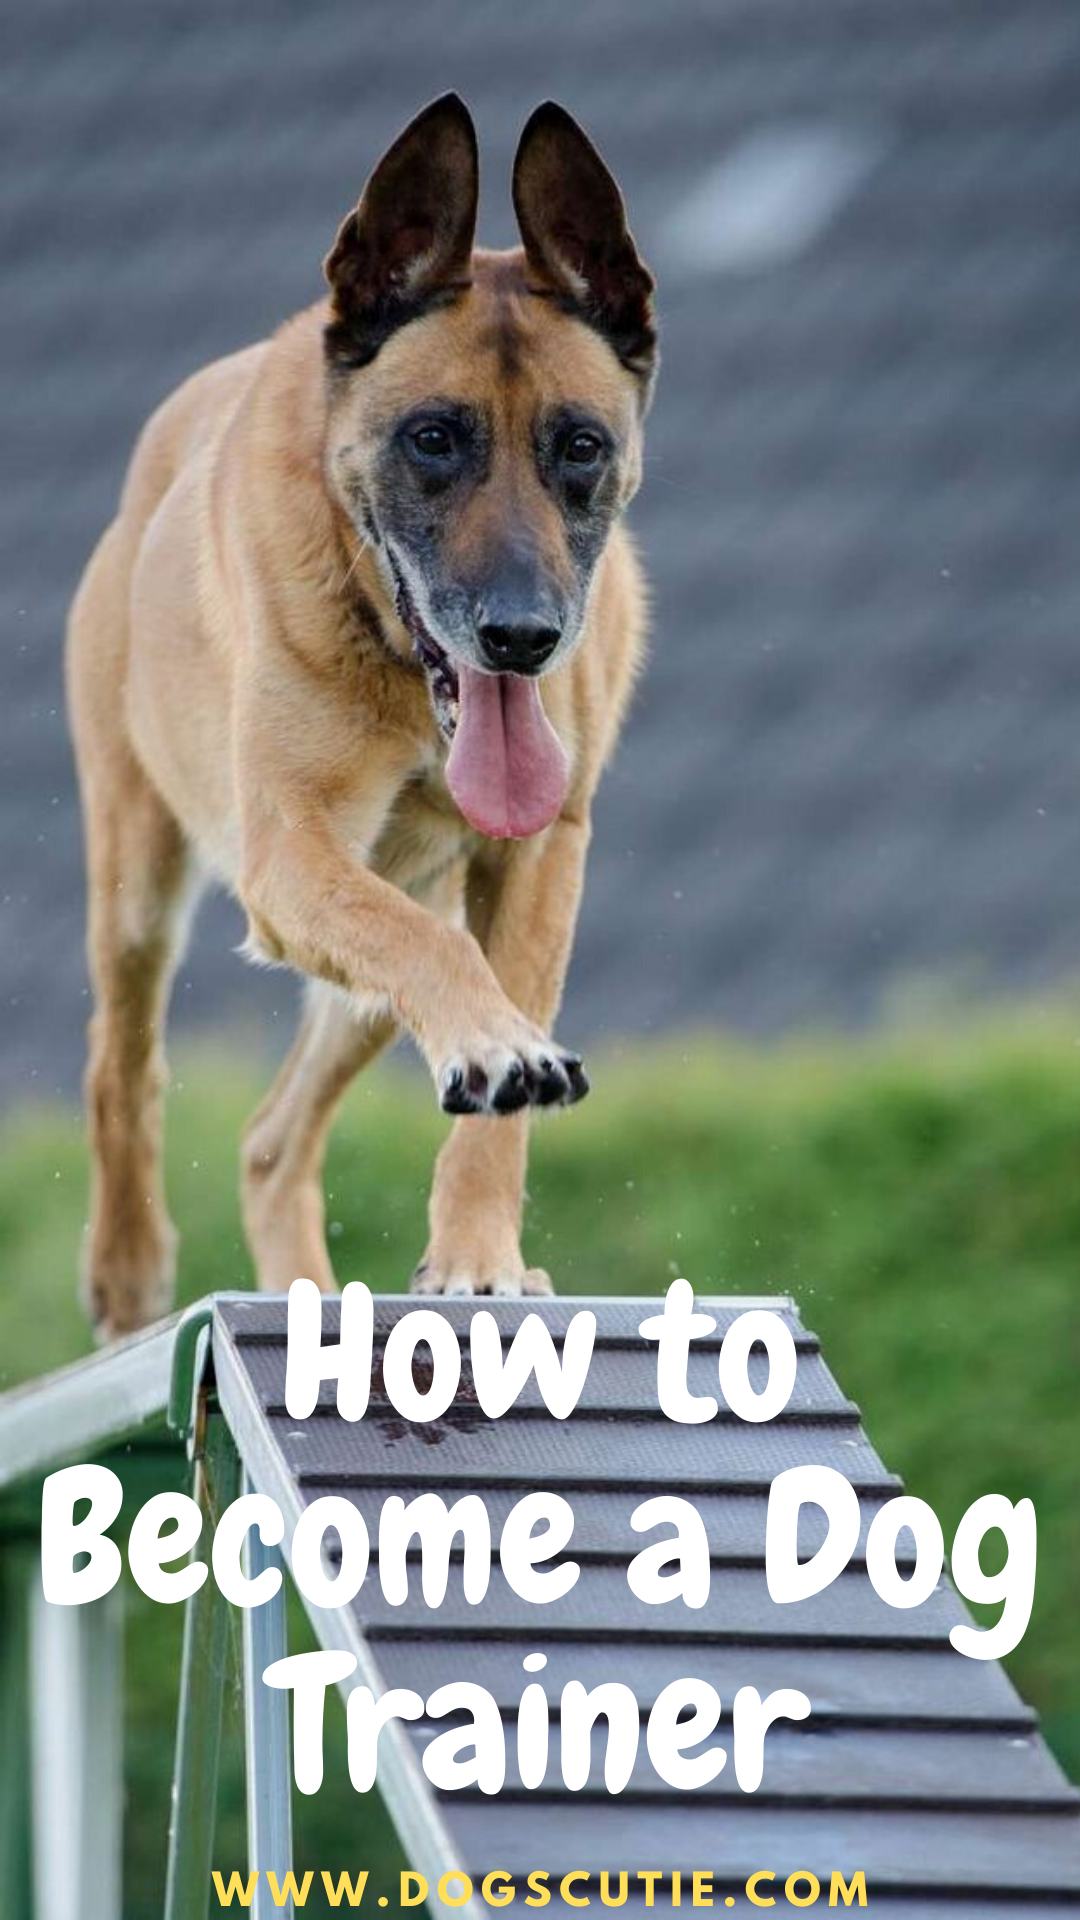 How To Become A Dog Trainer Become A Dog Trainer Dog Training School Dog Trainer